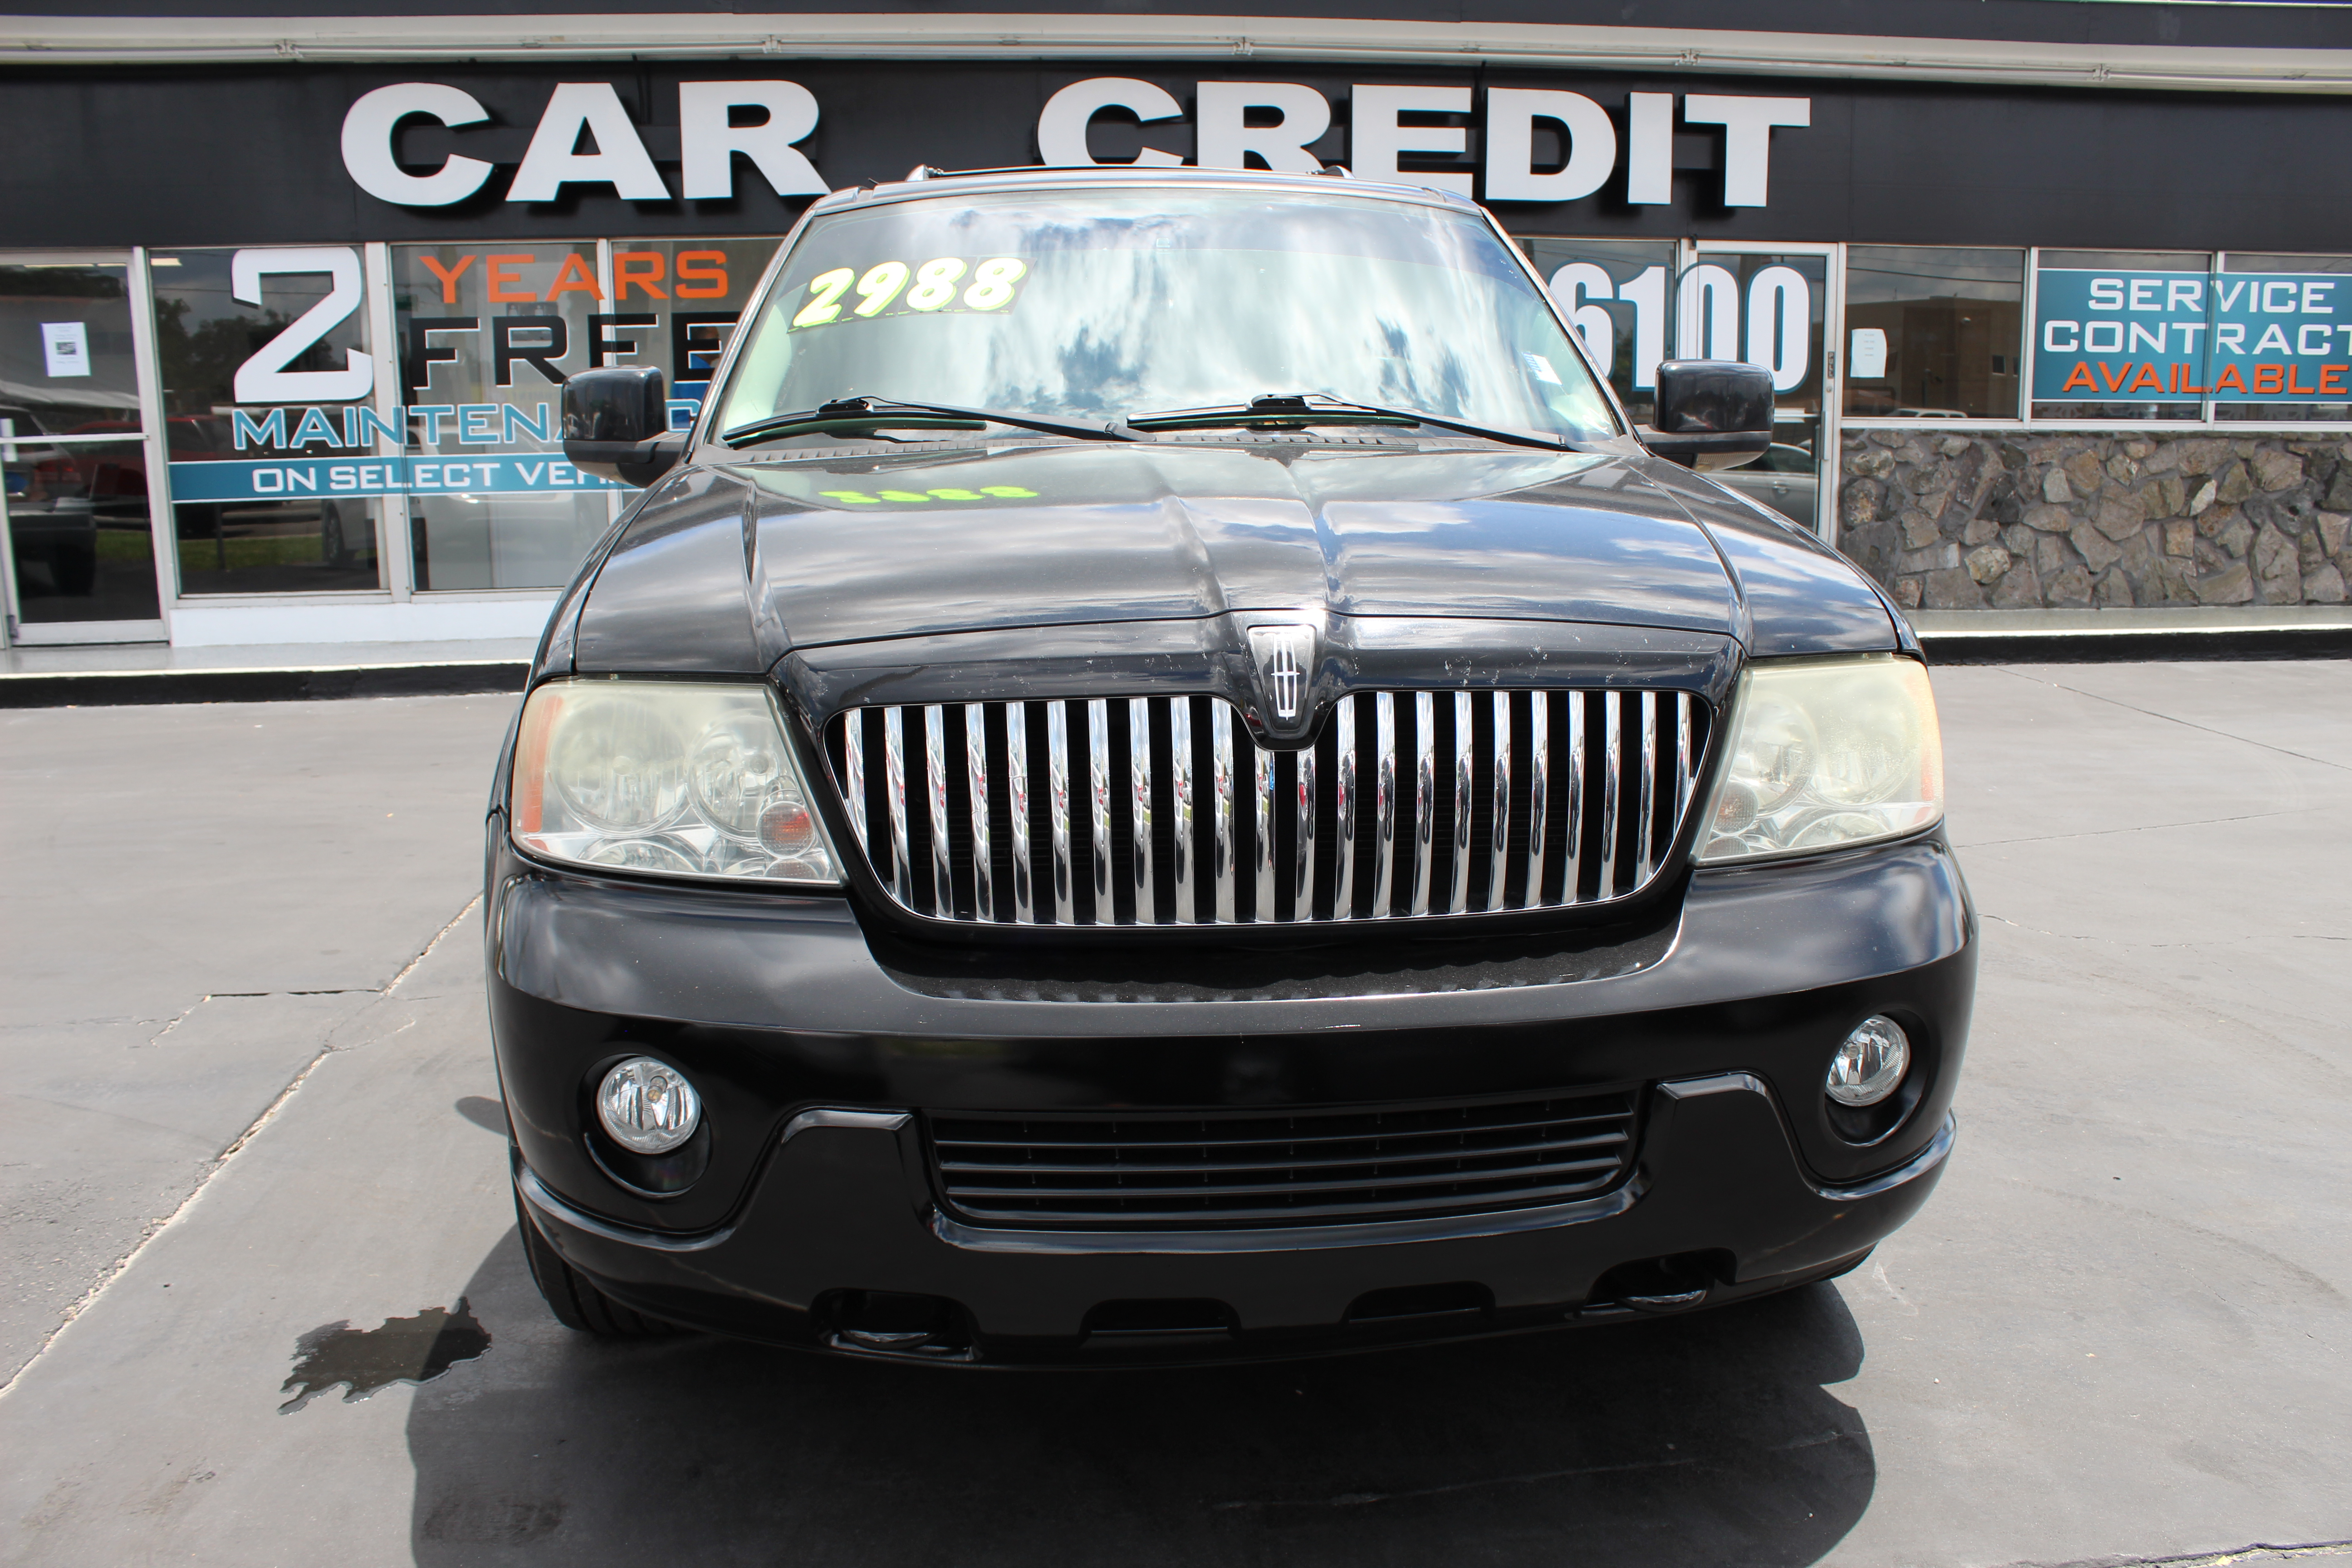 Pre-Owned 2003 Lincoln Navigator